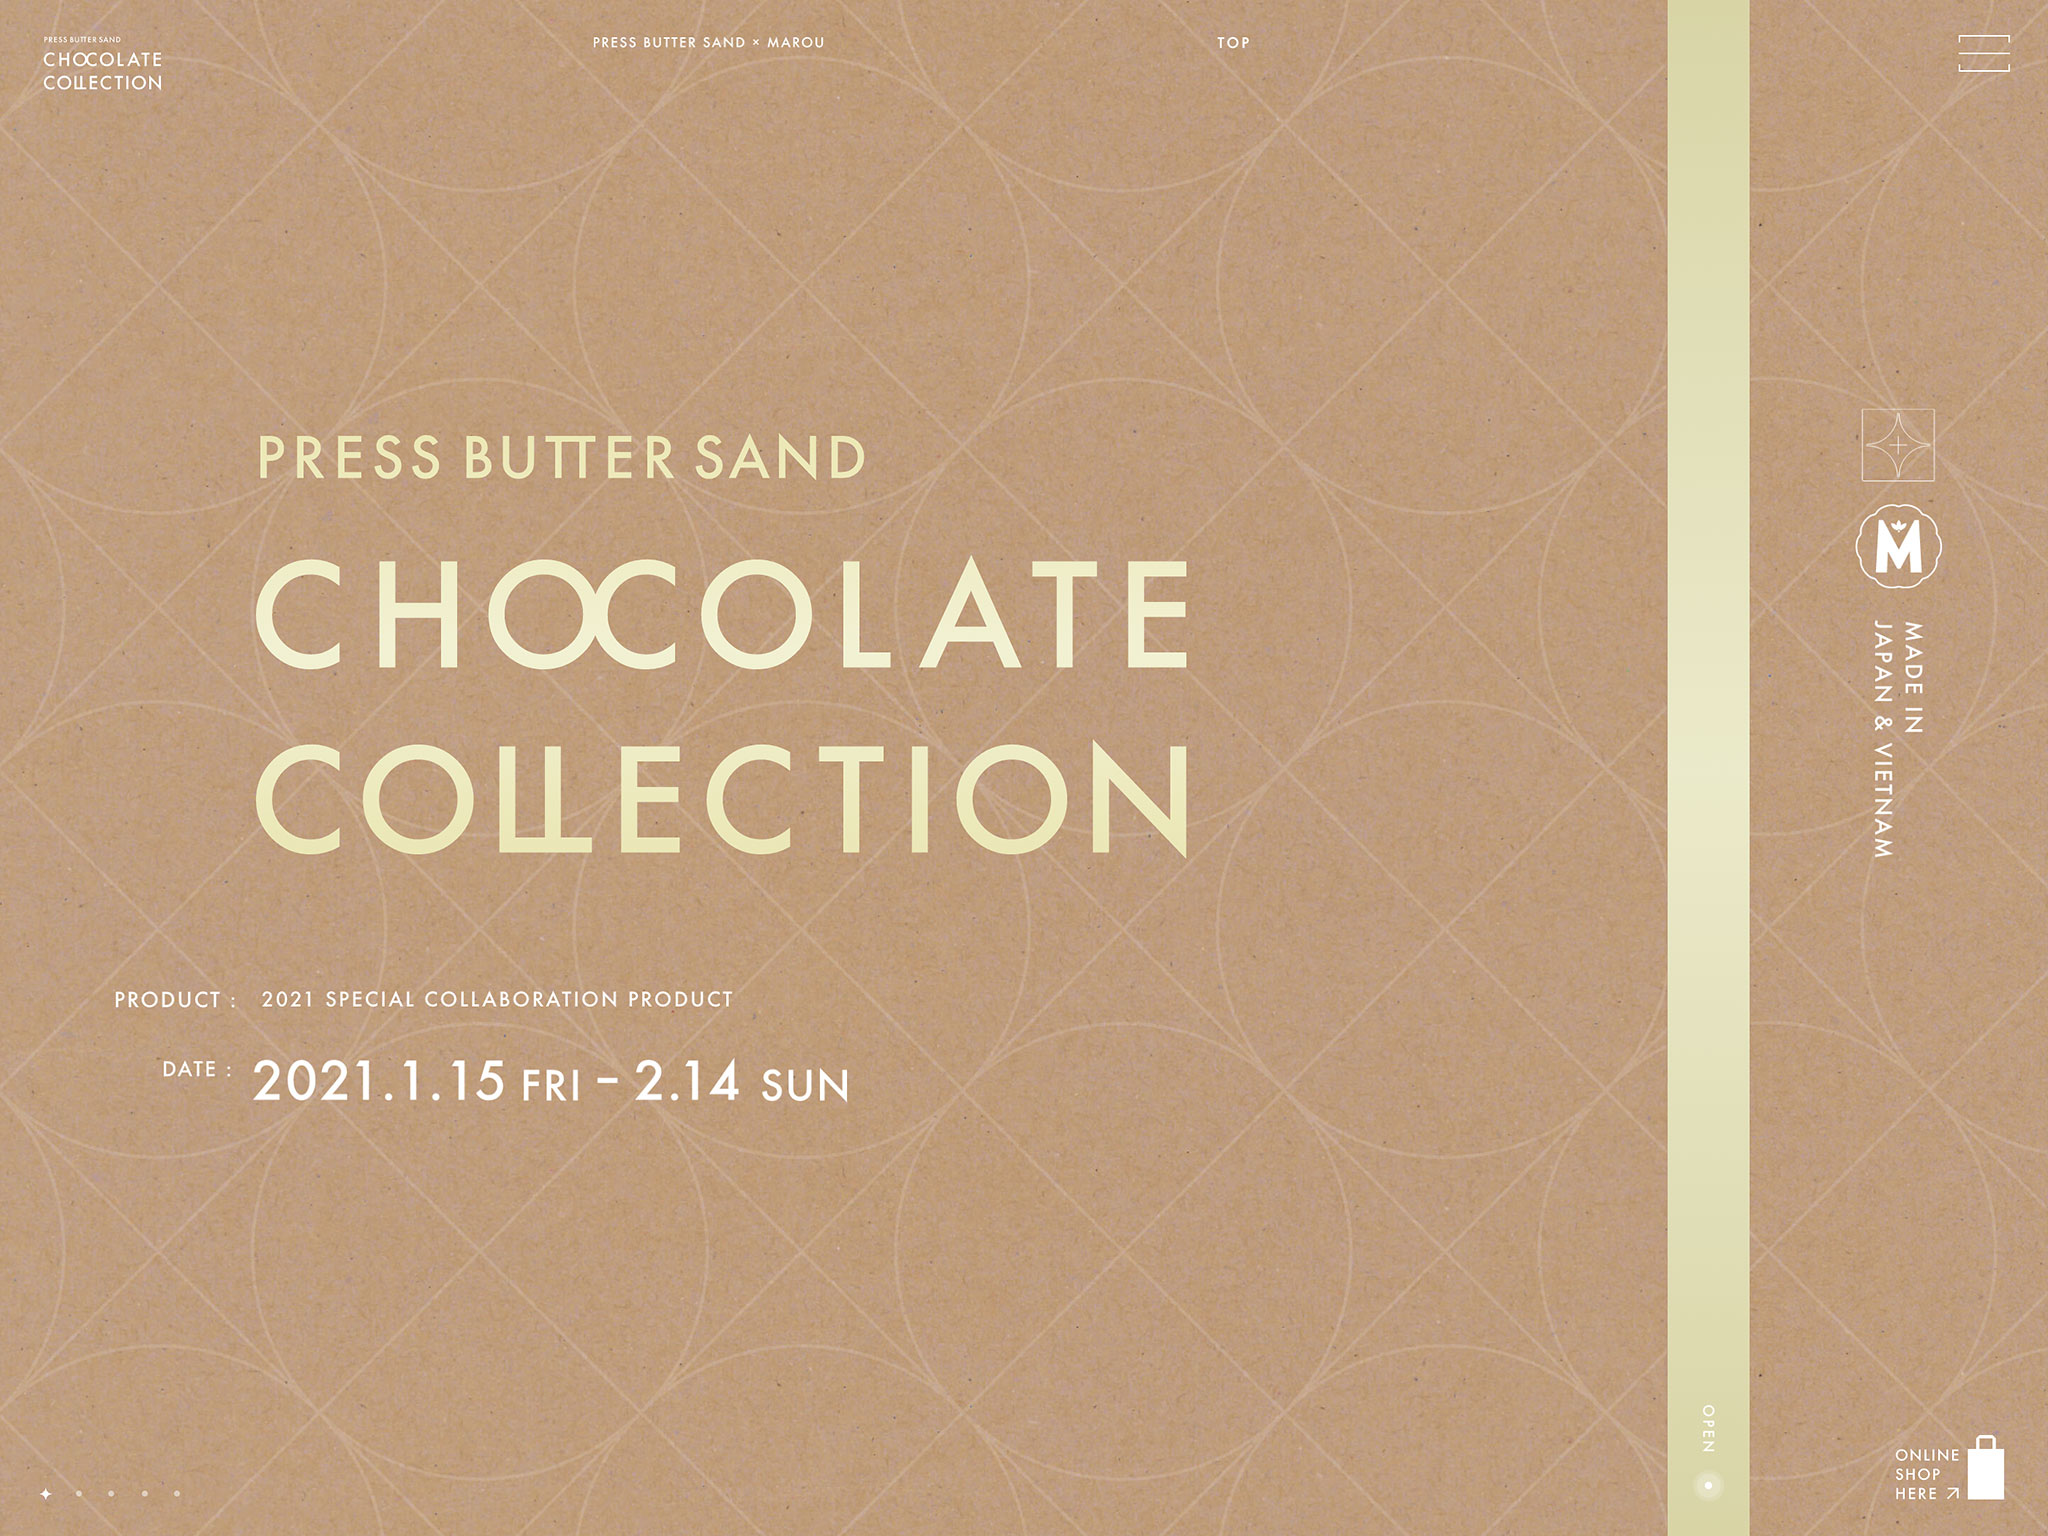 PRESS BUTTER SAND CHOCOLATE COLLECTION | プレスバターサンド チョコレートコレクション